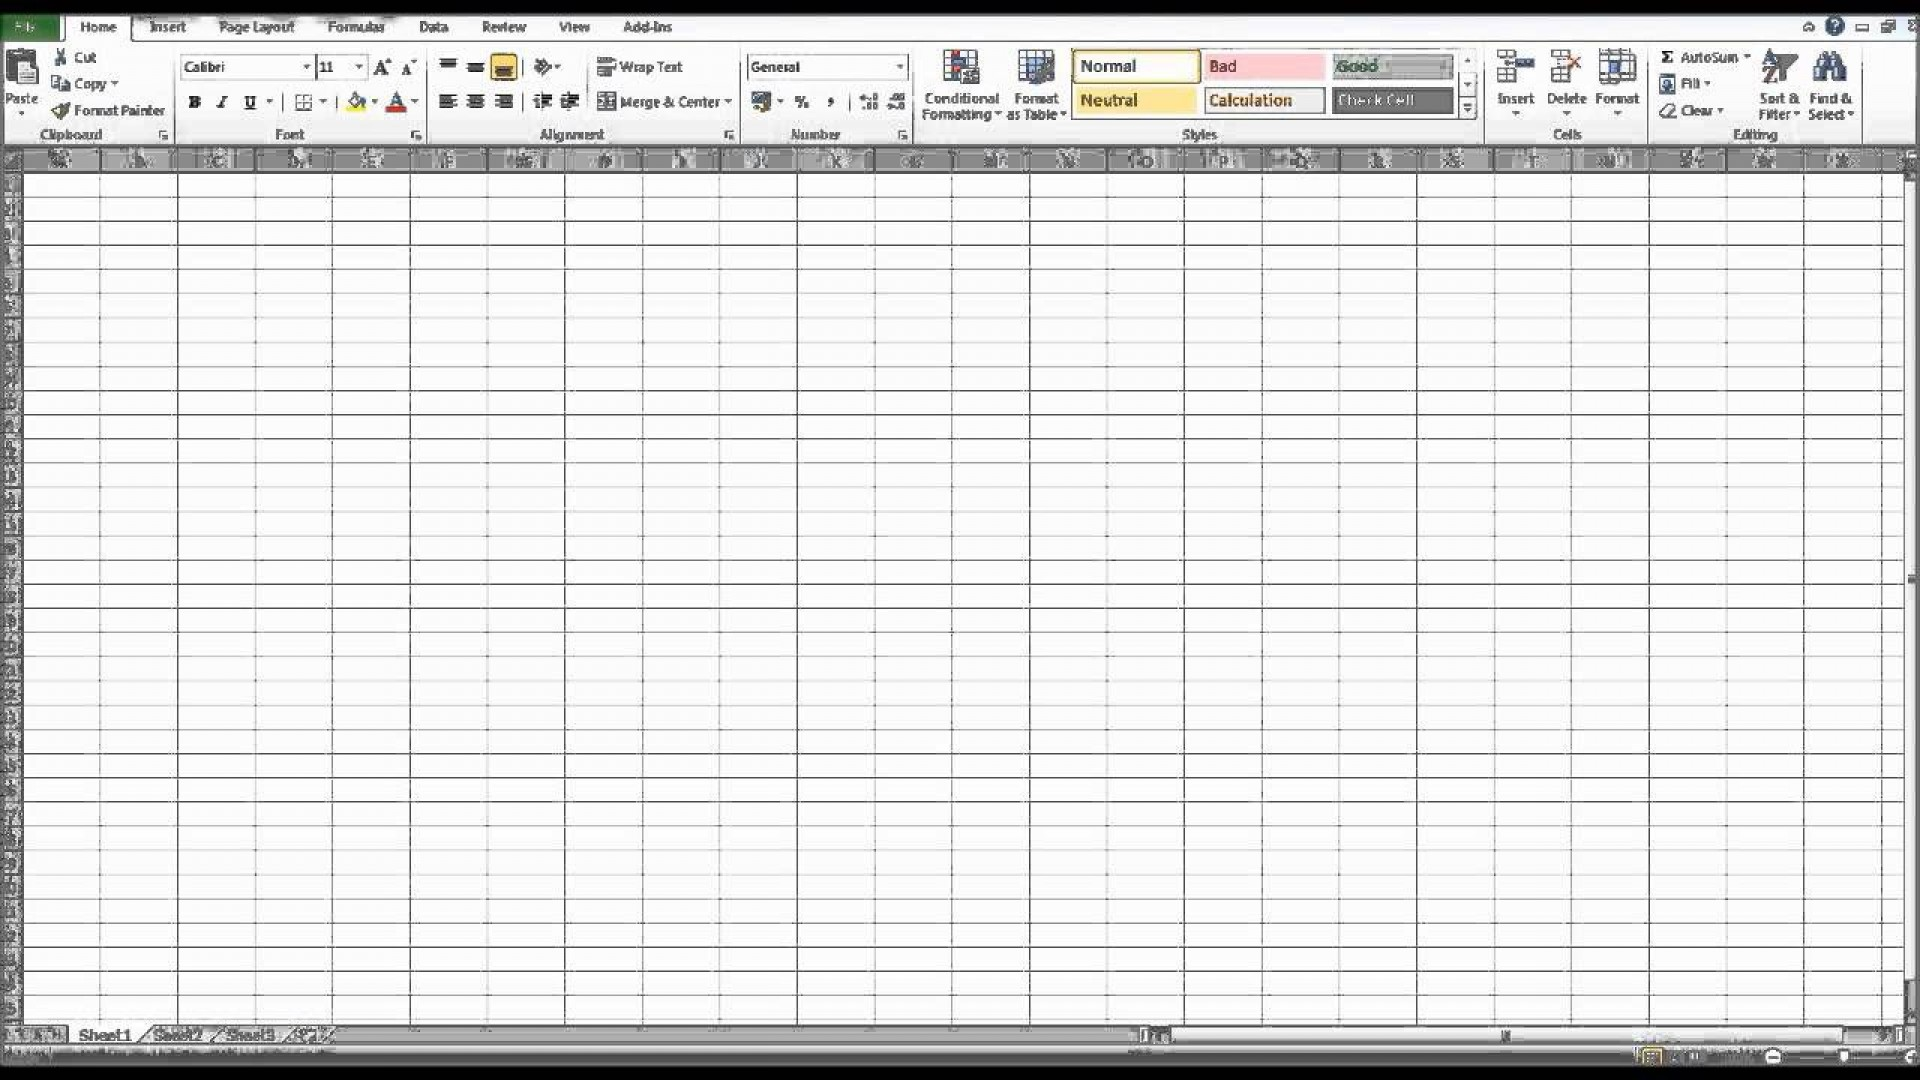 003 Sensational Profit Los Template Excel High Def  Simple Monthly And Statement Download1920